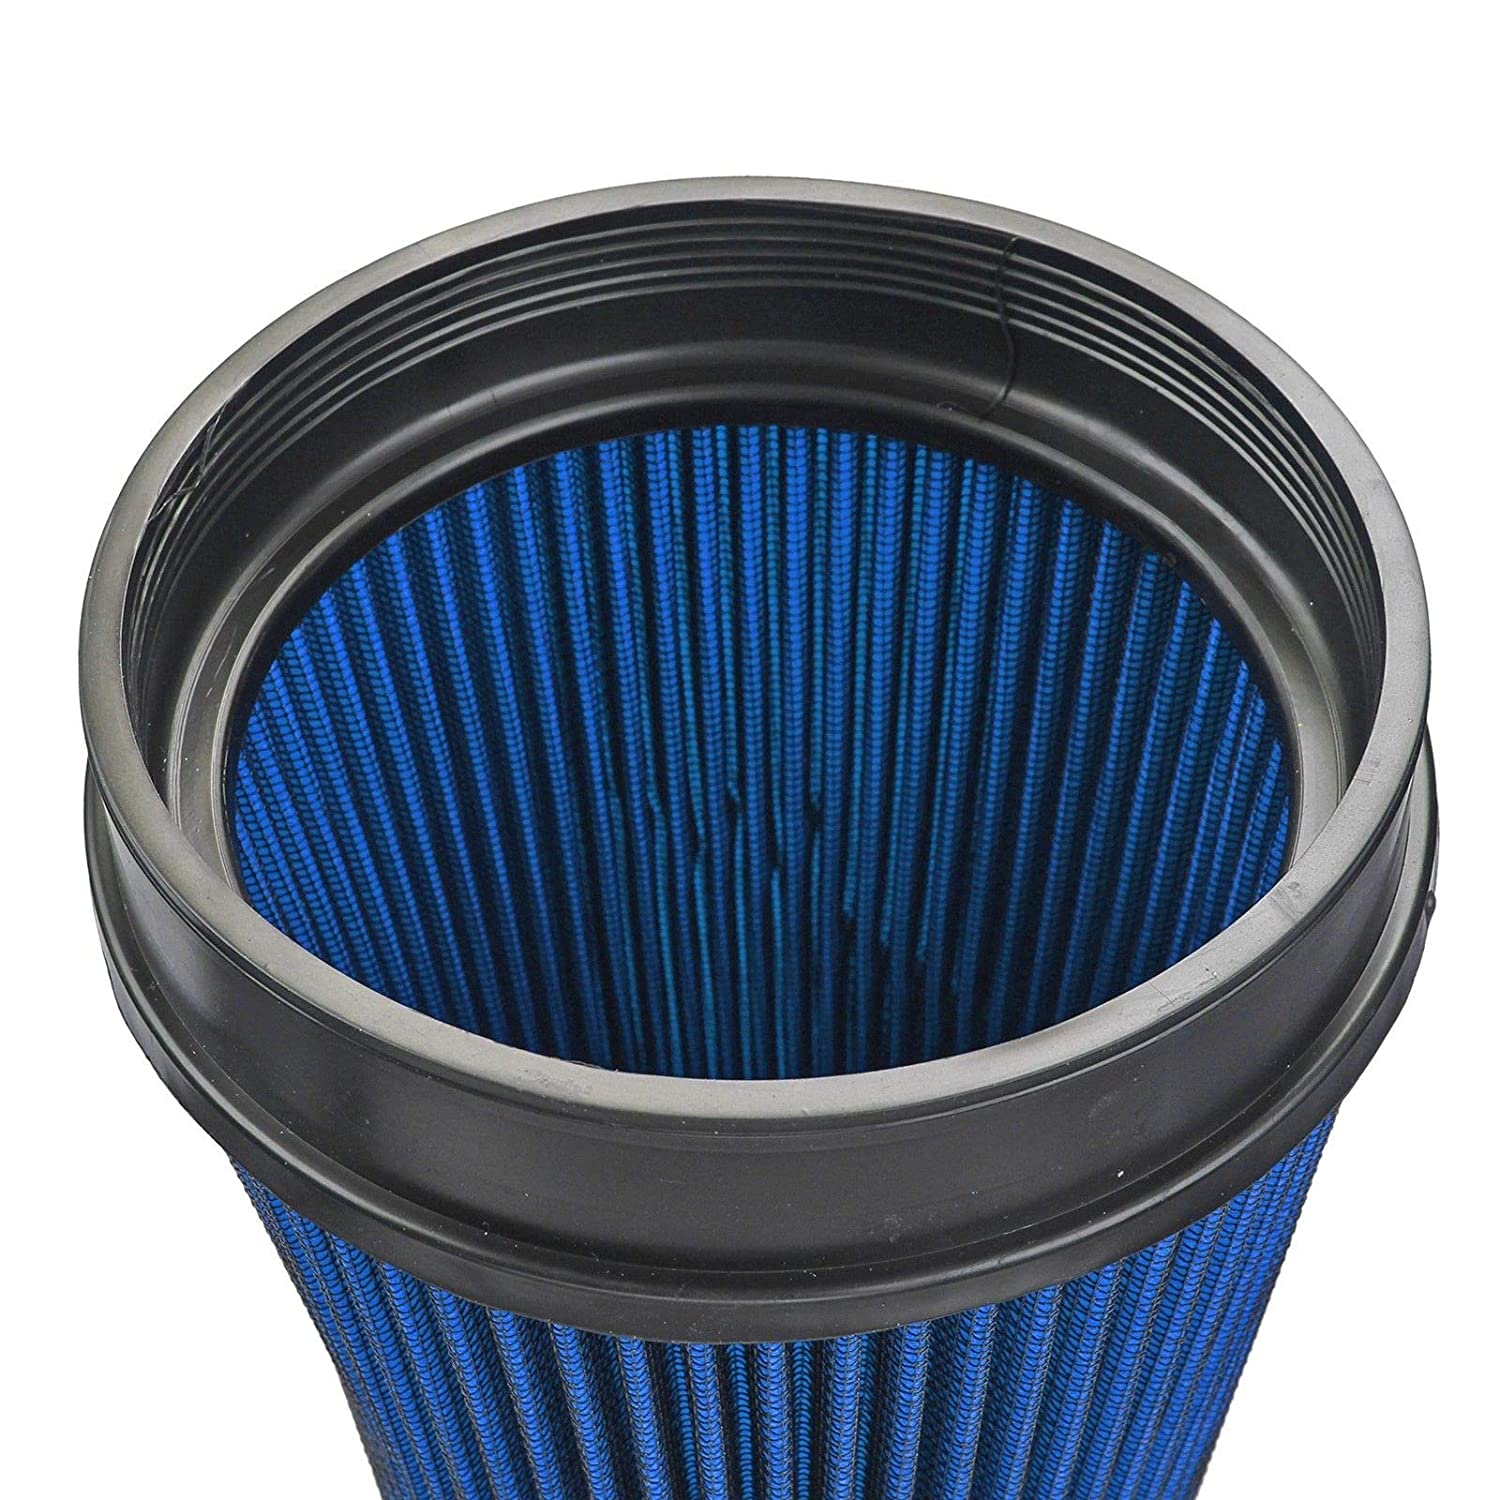 4 Inlet Cold Intake High Flow Round Cone Air Filter Fit for 99-06 GMC//Chevy V8 4.8L//5.3L//6.0L Blue